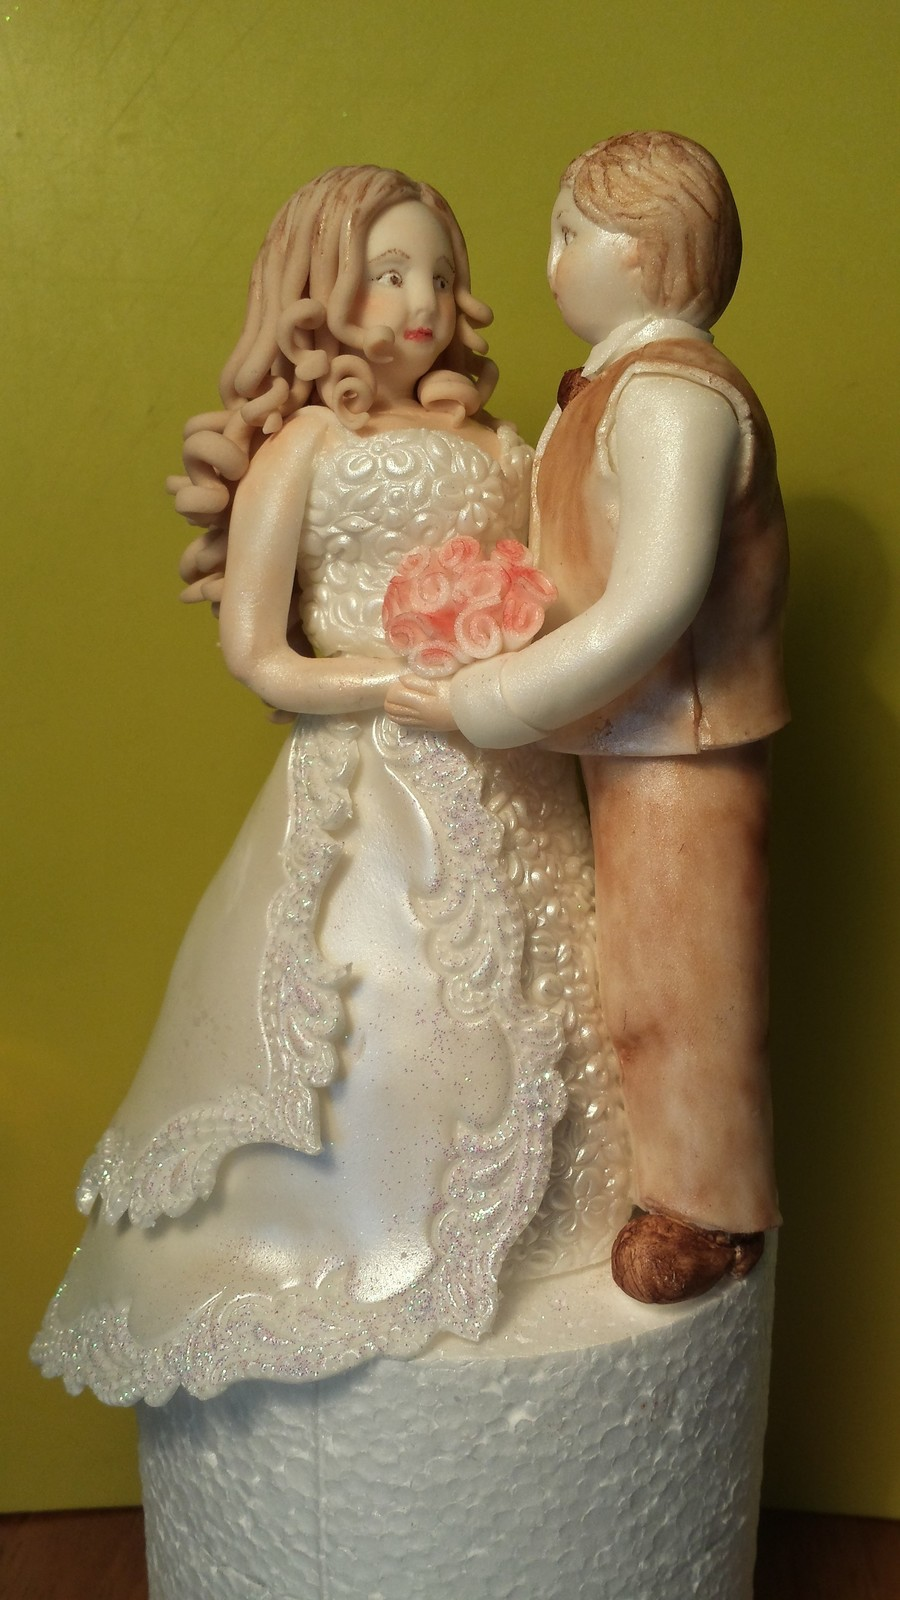 Bride And Groom Cake Topper Cakecentral Com